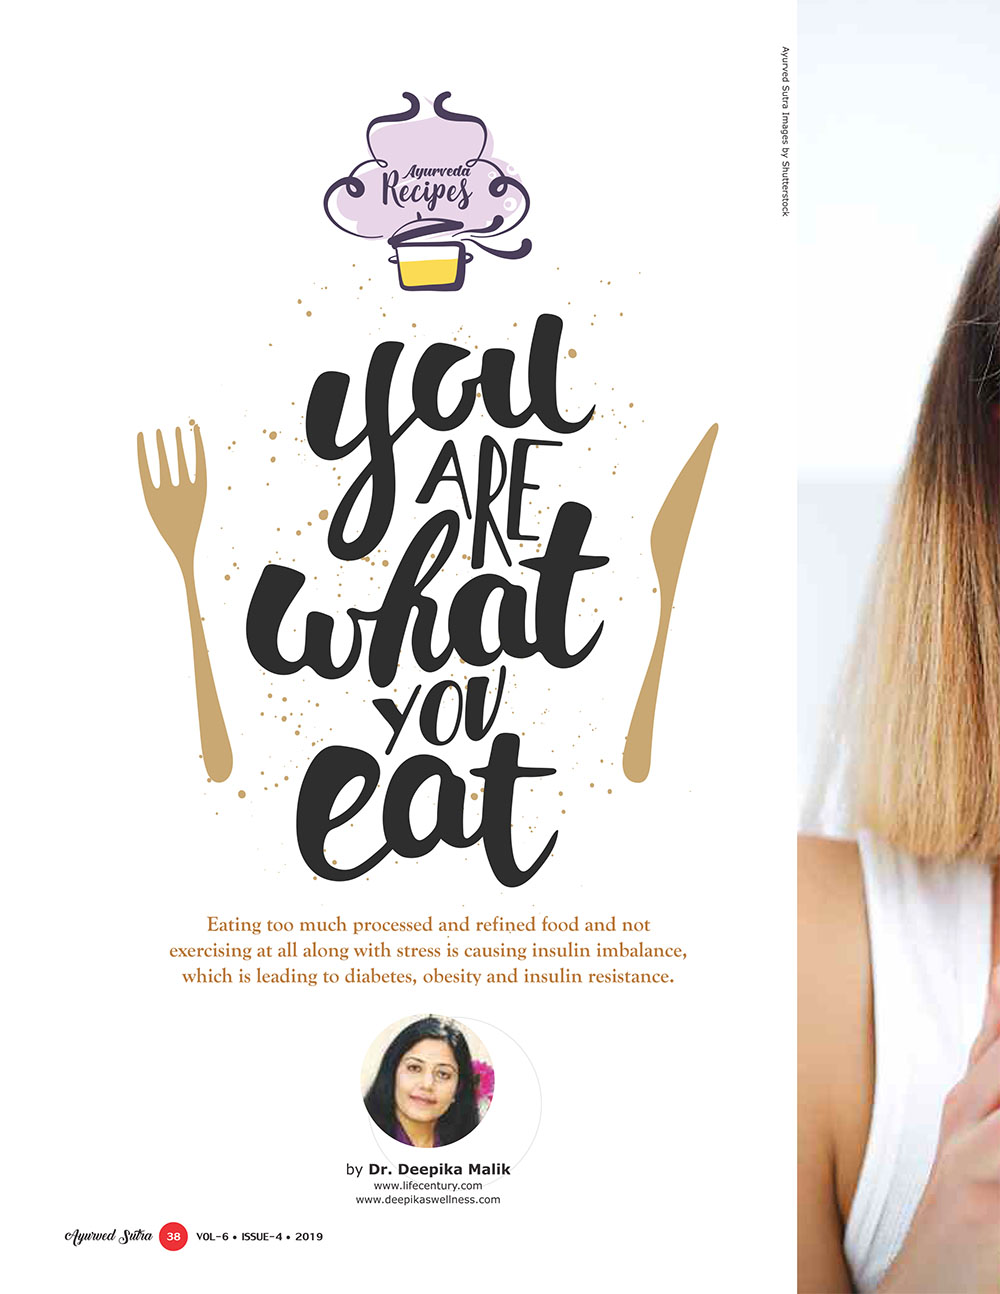 Ayurvedsutra Vol 06 issue 04 40 - You are what you eat